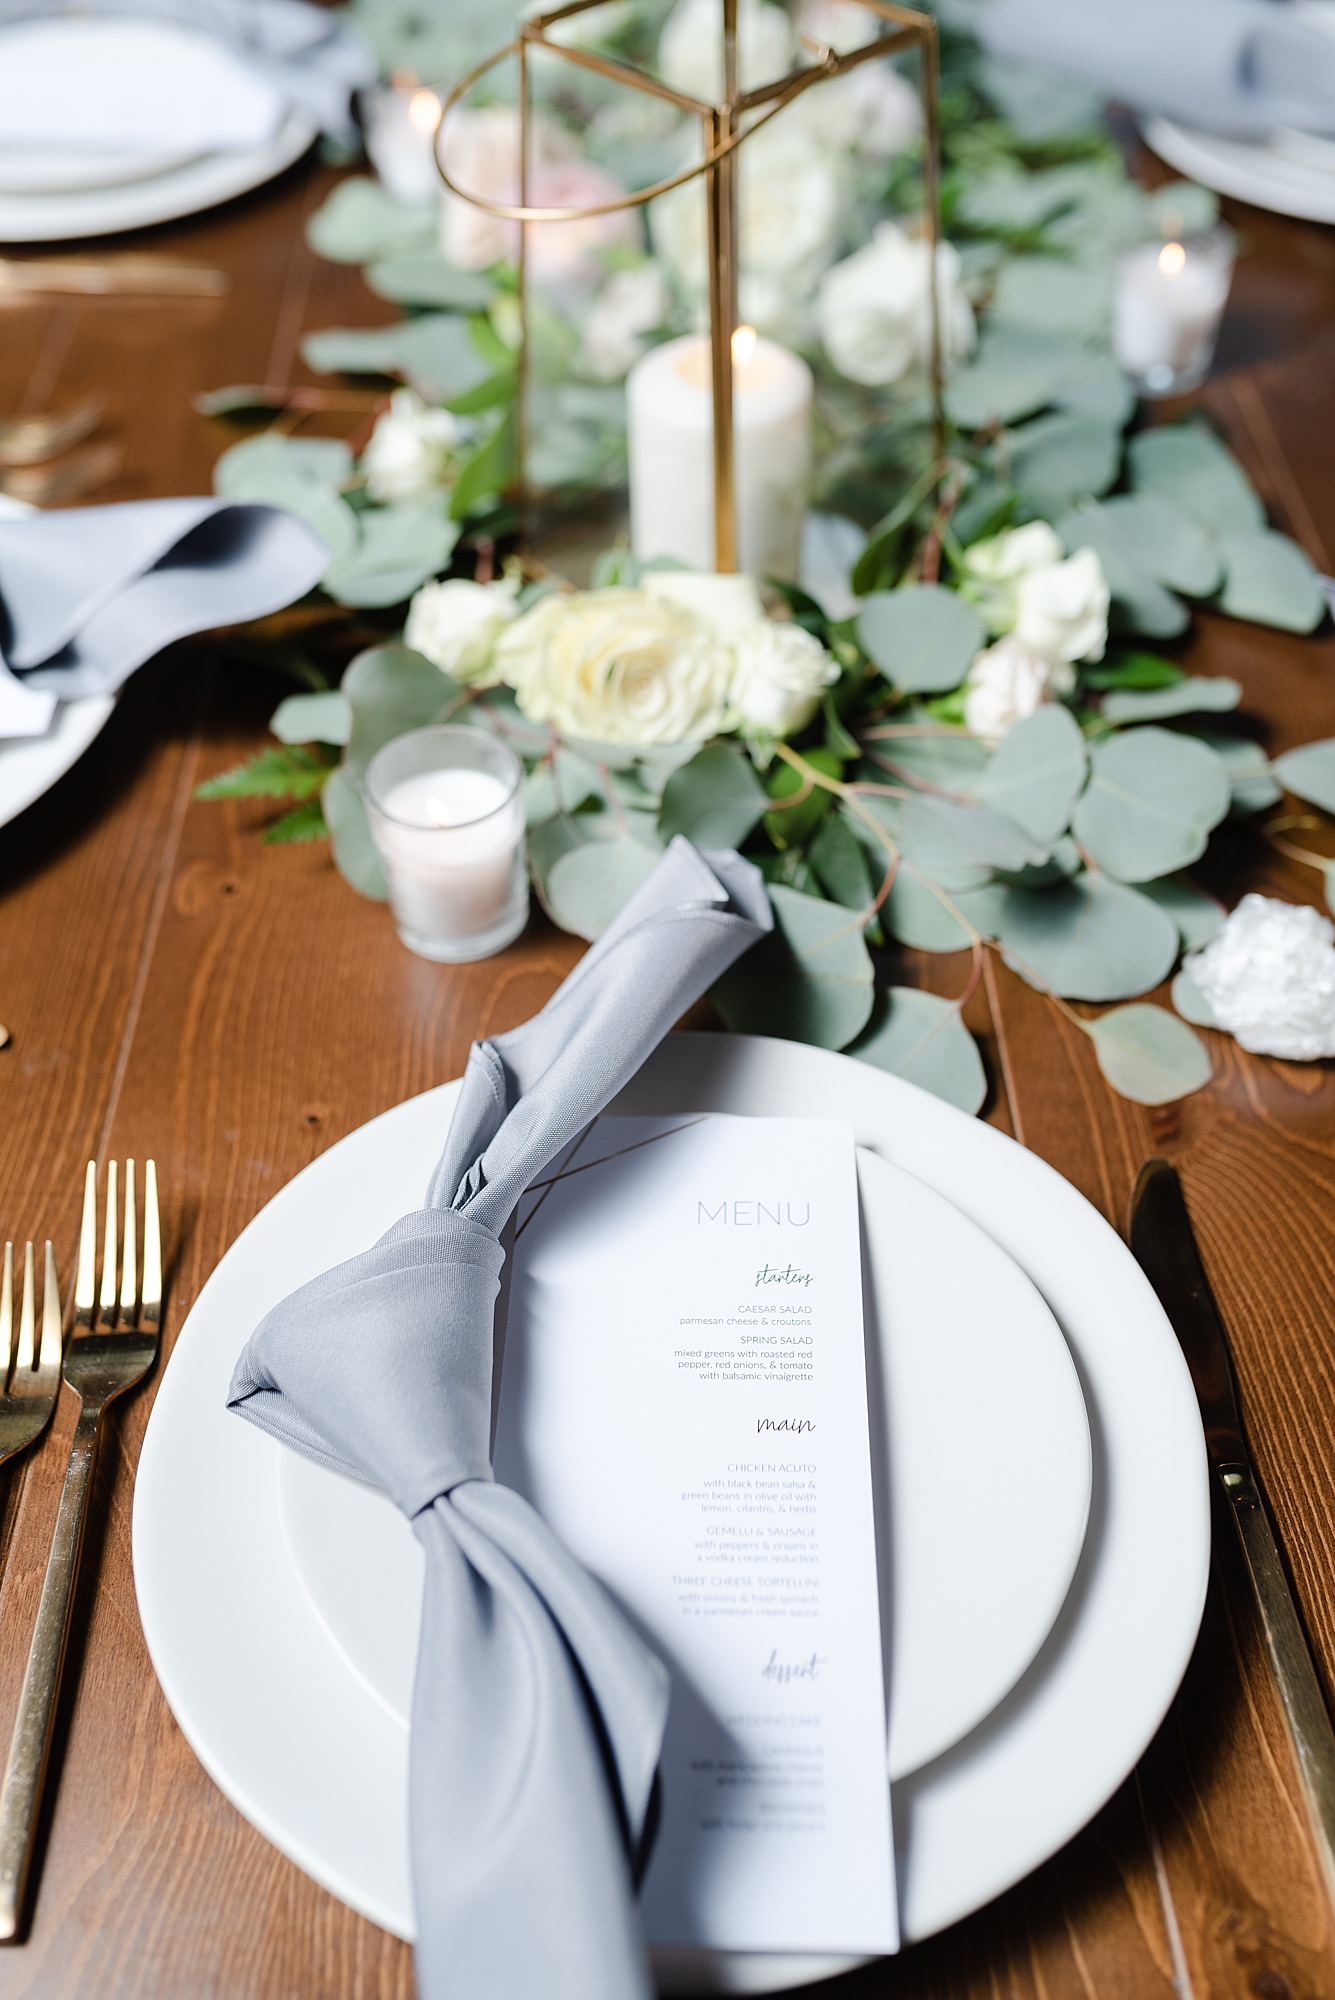 Wedding Place Setting: Modern and Southern Wedding at the Clementine featured on Nashville Bride Guide